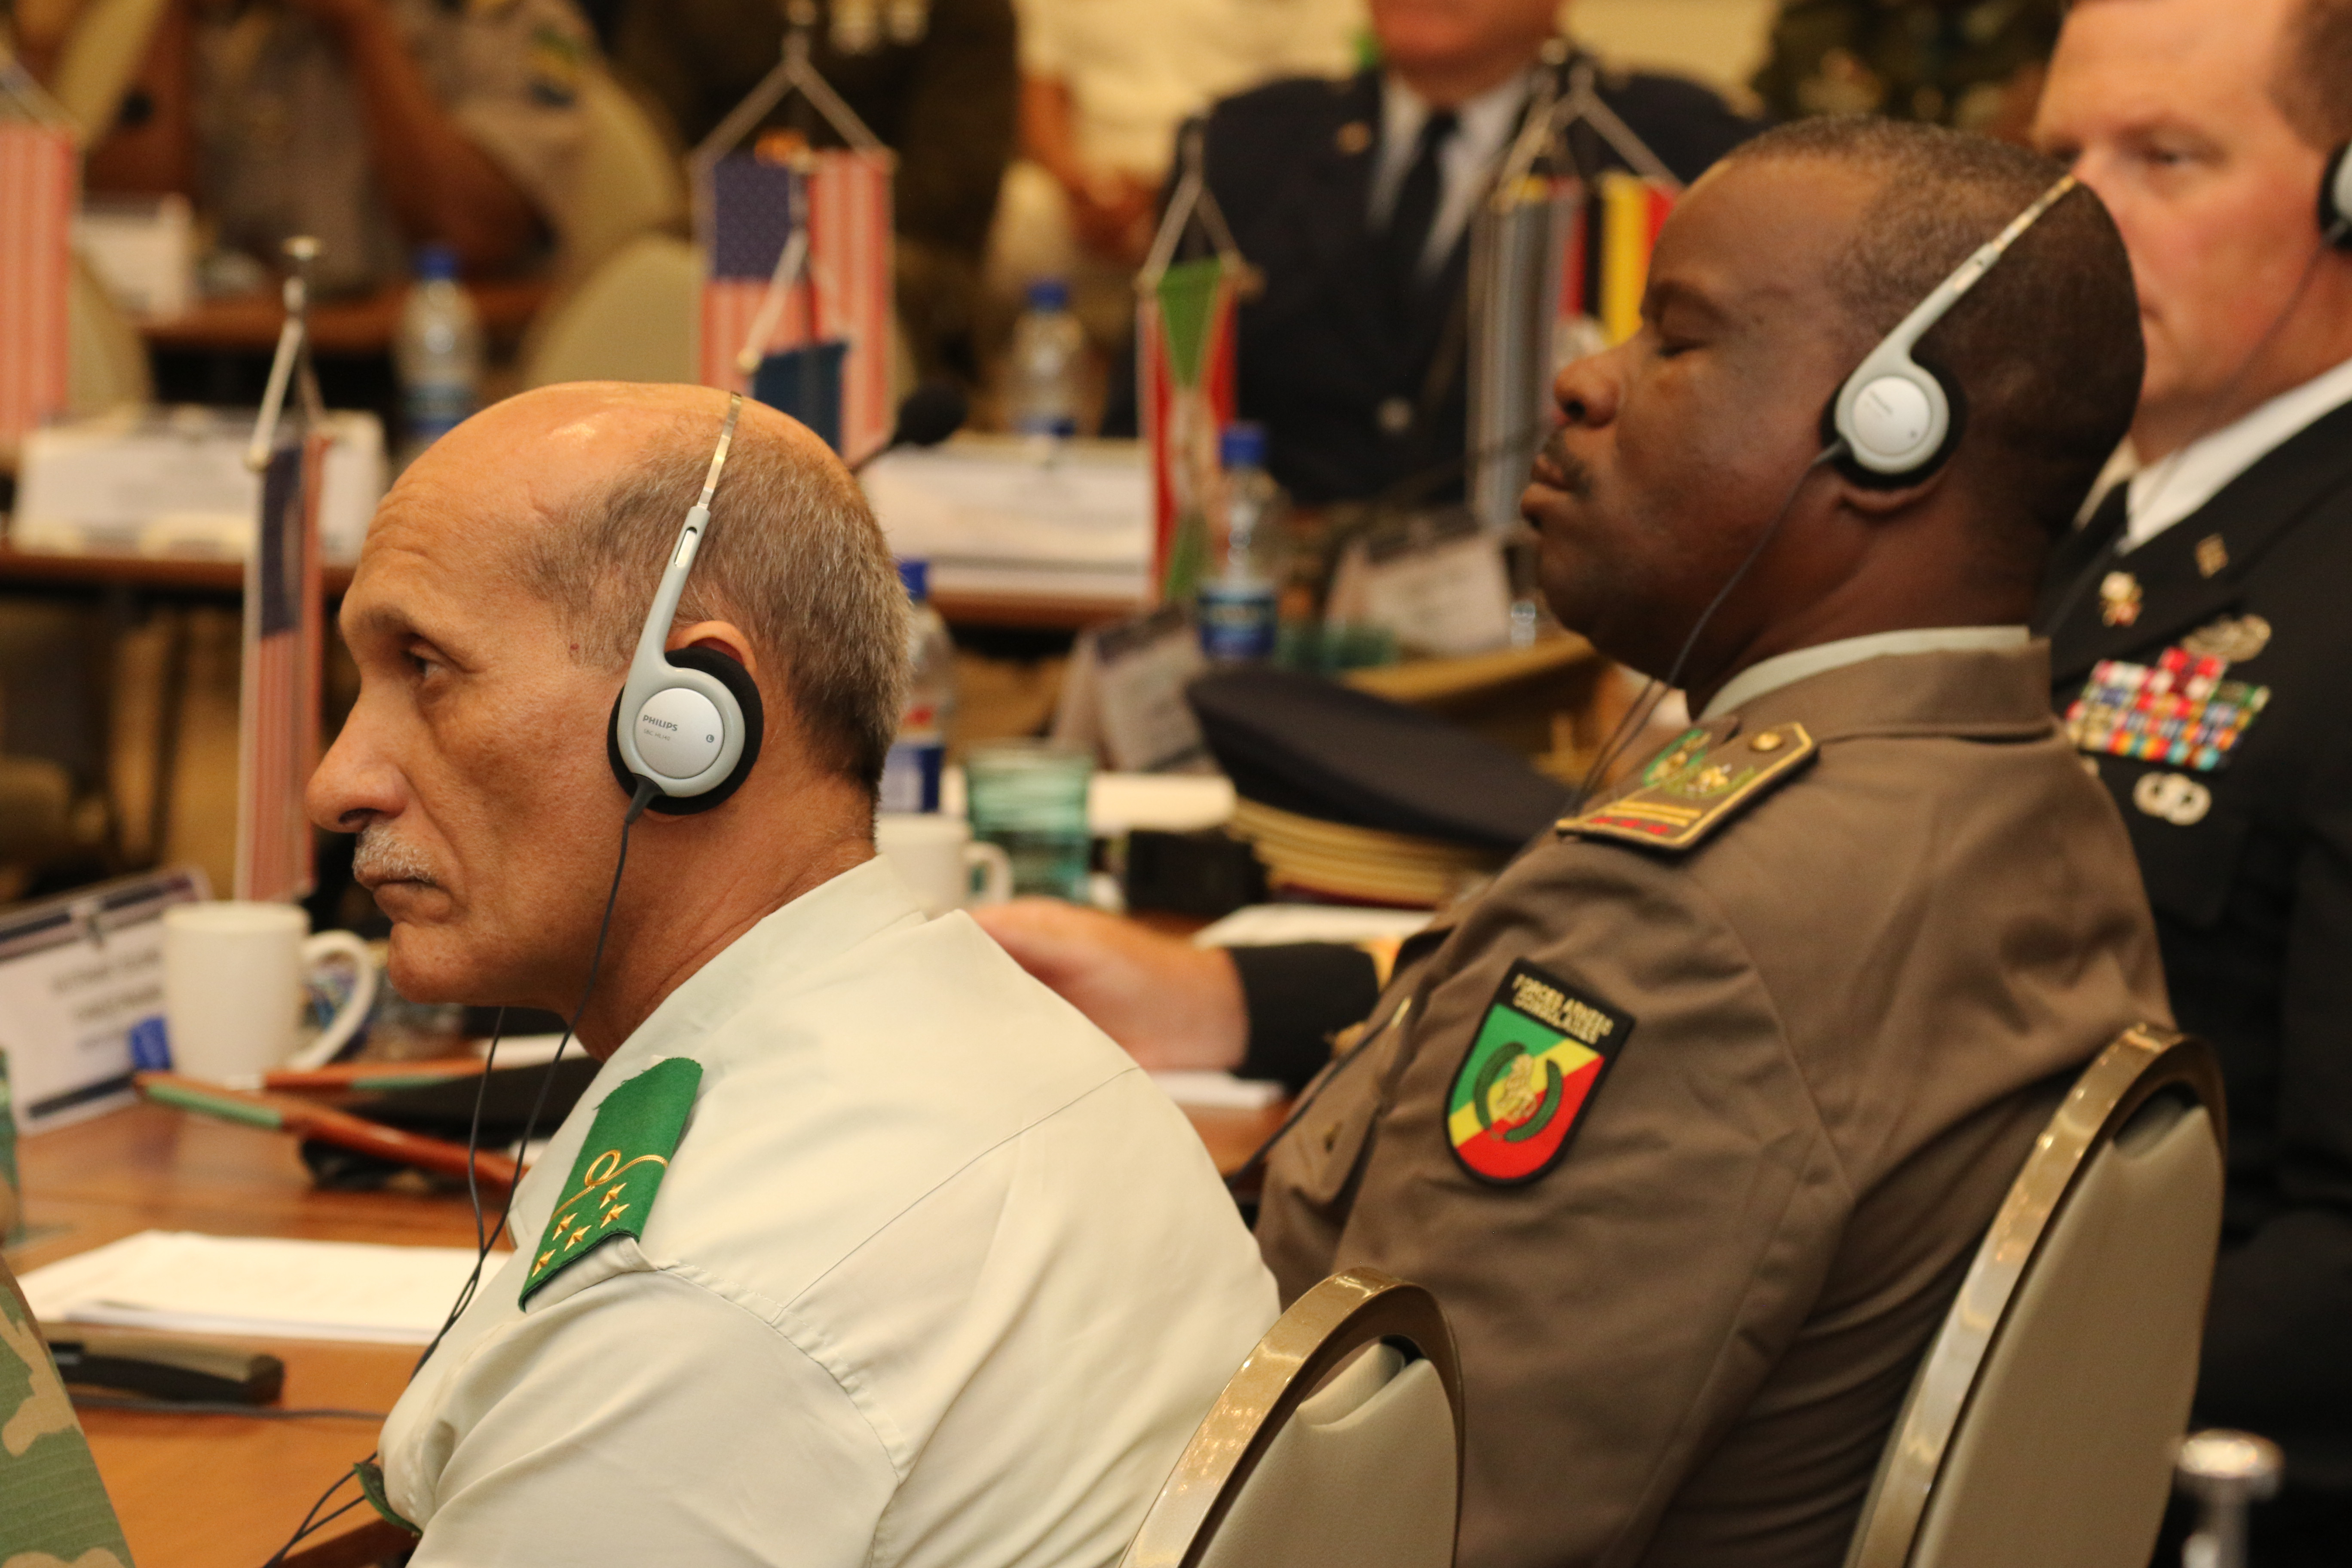 Participants take part in the closing ceremony of Africa Endeavor 2018 Aug. 3 in Santa Maria, Sal, Cabo Verde. Africa Endeavor is an annual senior leader and communications symposium designed to help develop multinational practices for peacekeeping, disaster response and counter violent extremist organization operations mandated by the African Union and the United Nations.